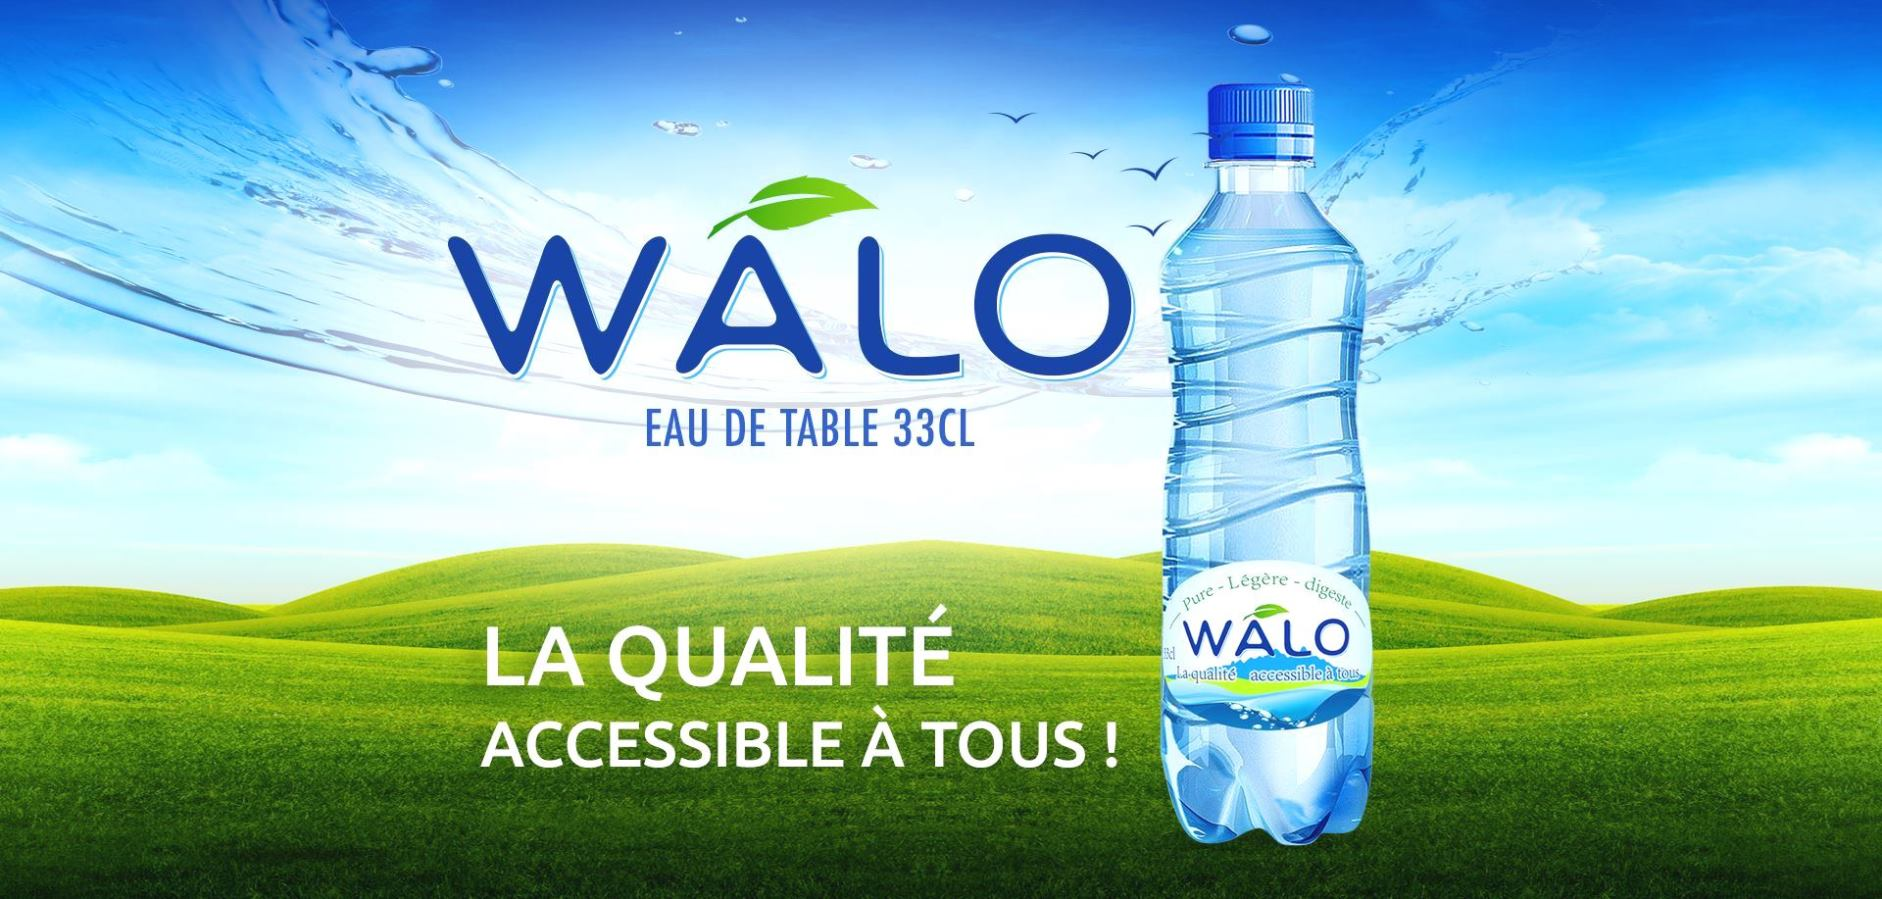 eau pure conditionnée au sénégal : walo par fary industrie